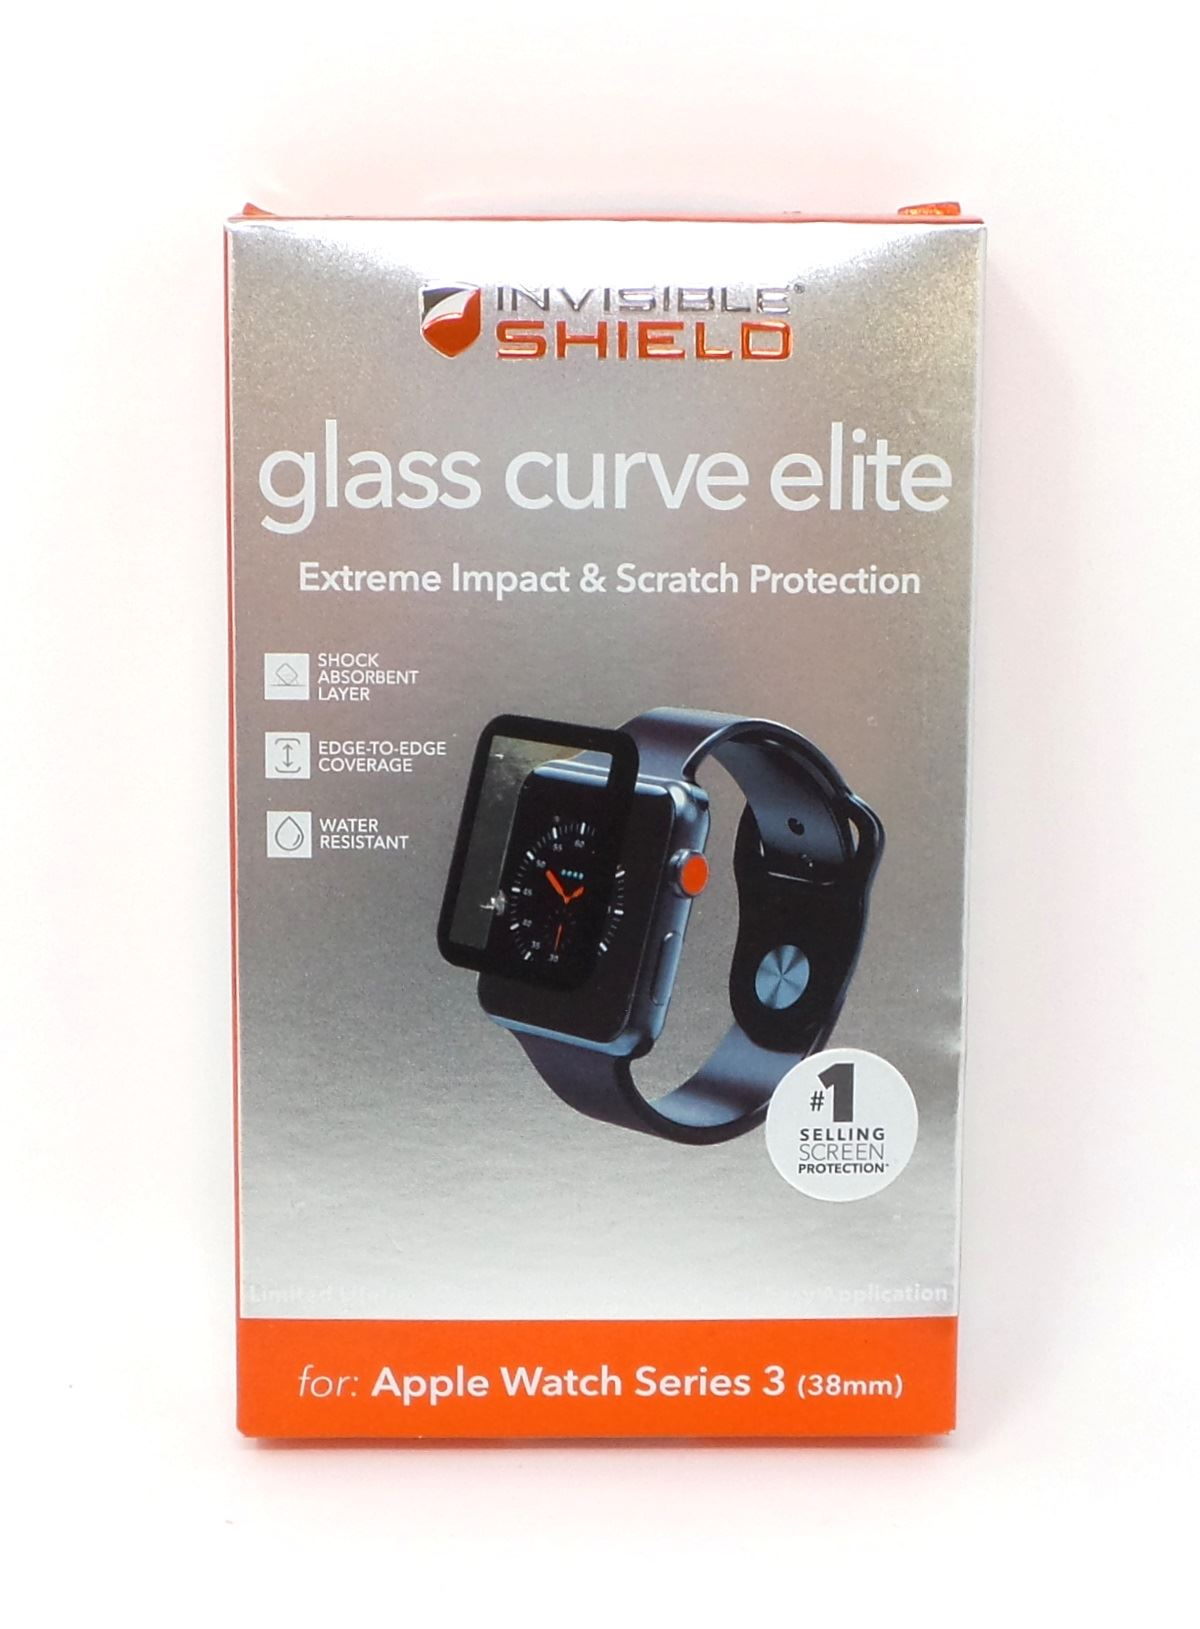 super popular 0d355 823f7 Details about Zagg InvisibleShield Glass Curve Elite for Apple Watch Series  3 38mm Black New